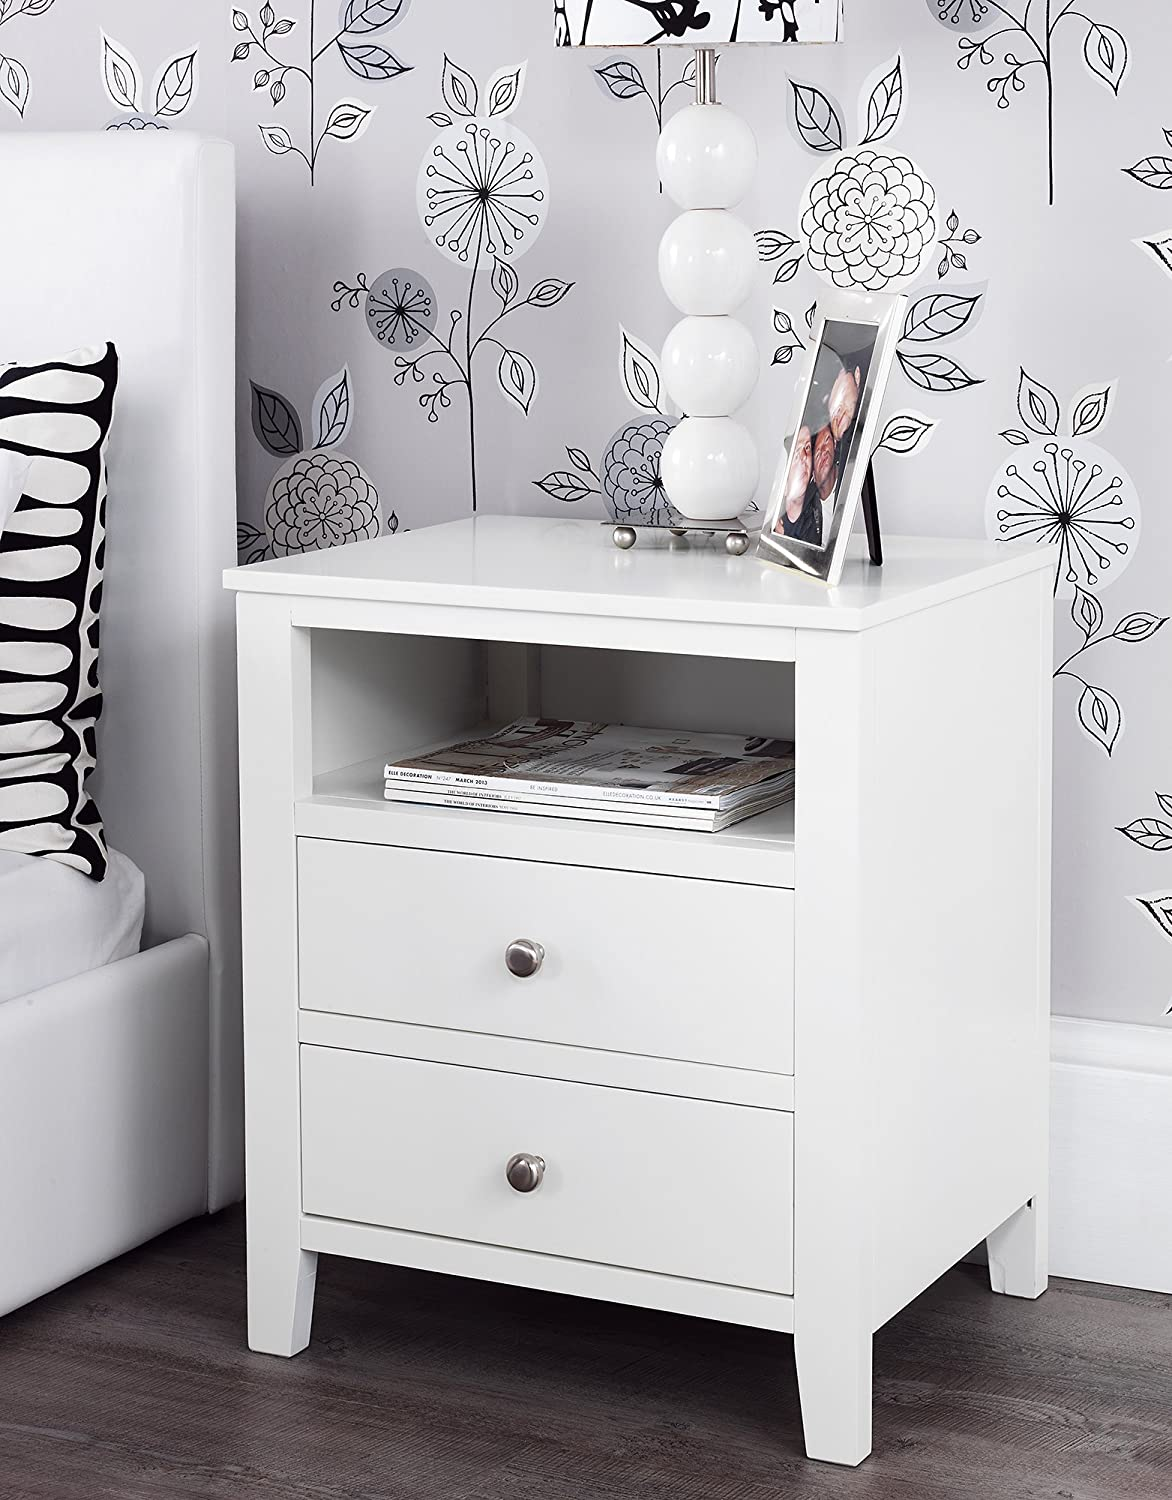 Brooklyn White Bedside Table with 2 drawers and shelf metal